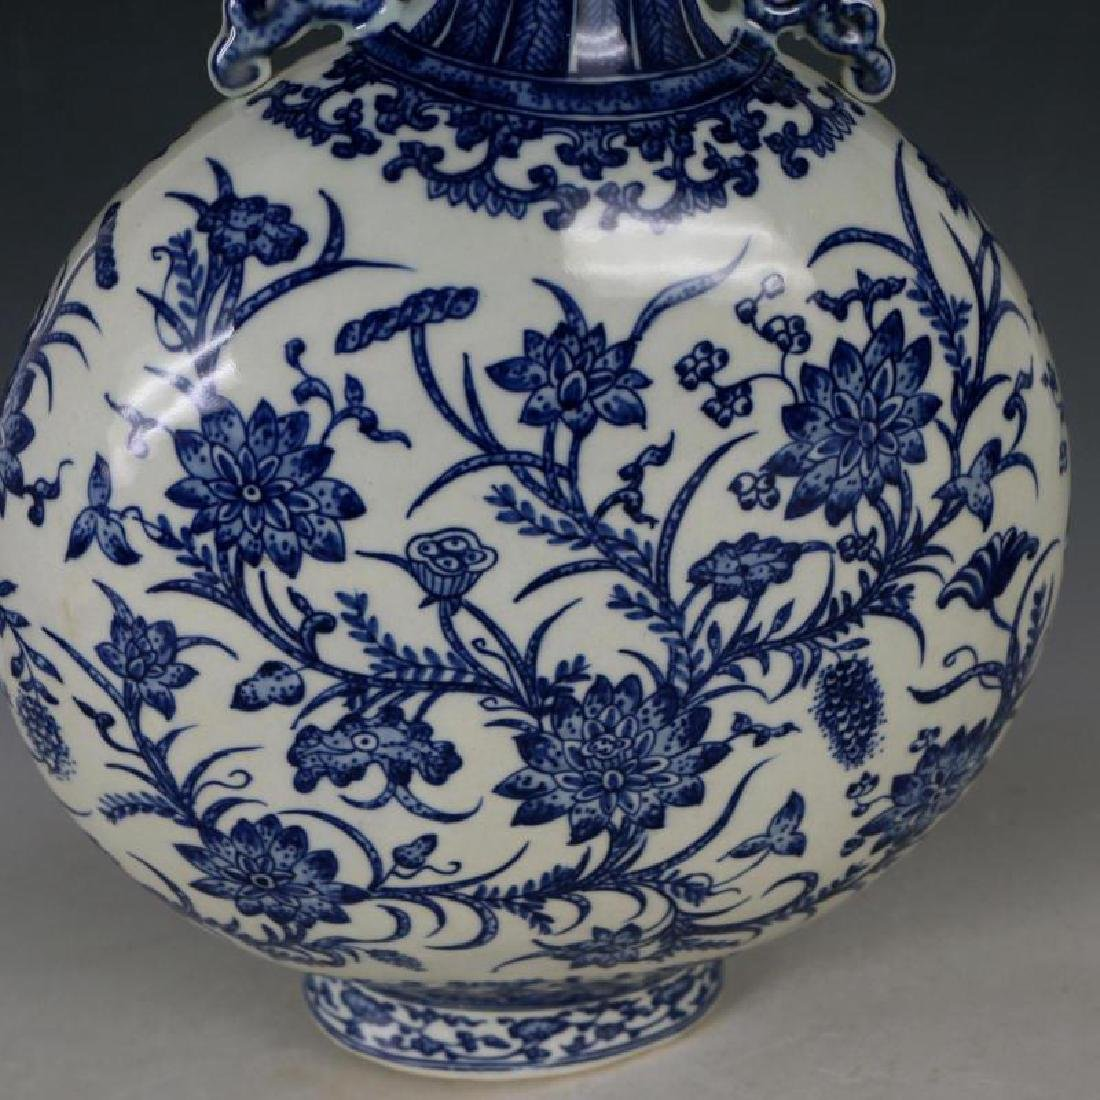 A Big Blue and White Porcelain Flat Bottle - 5